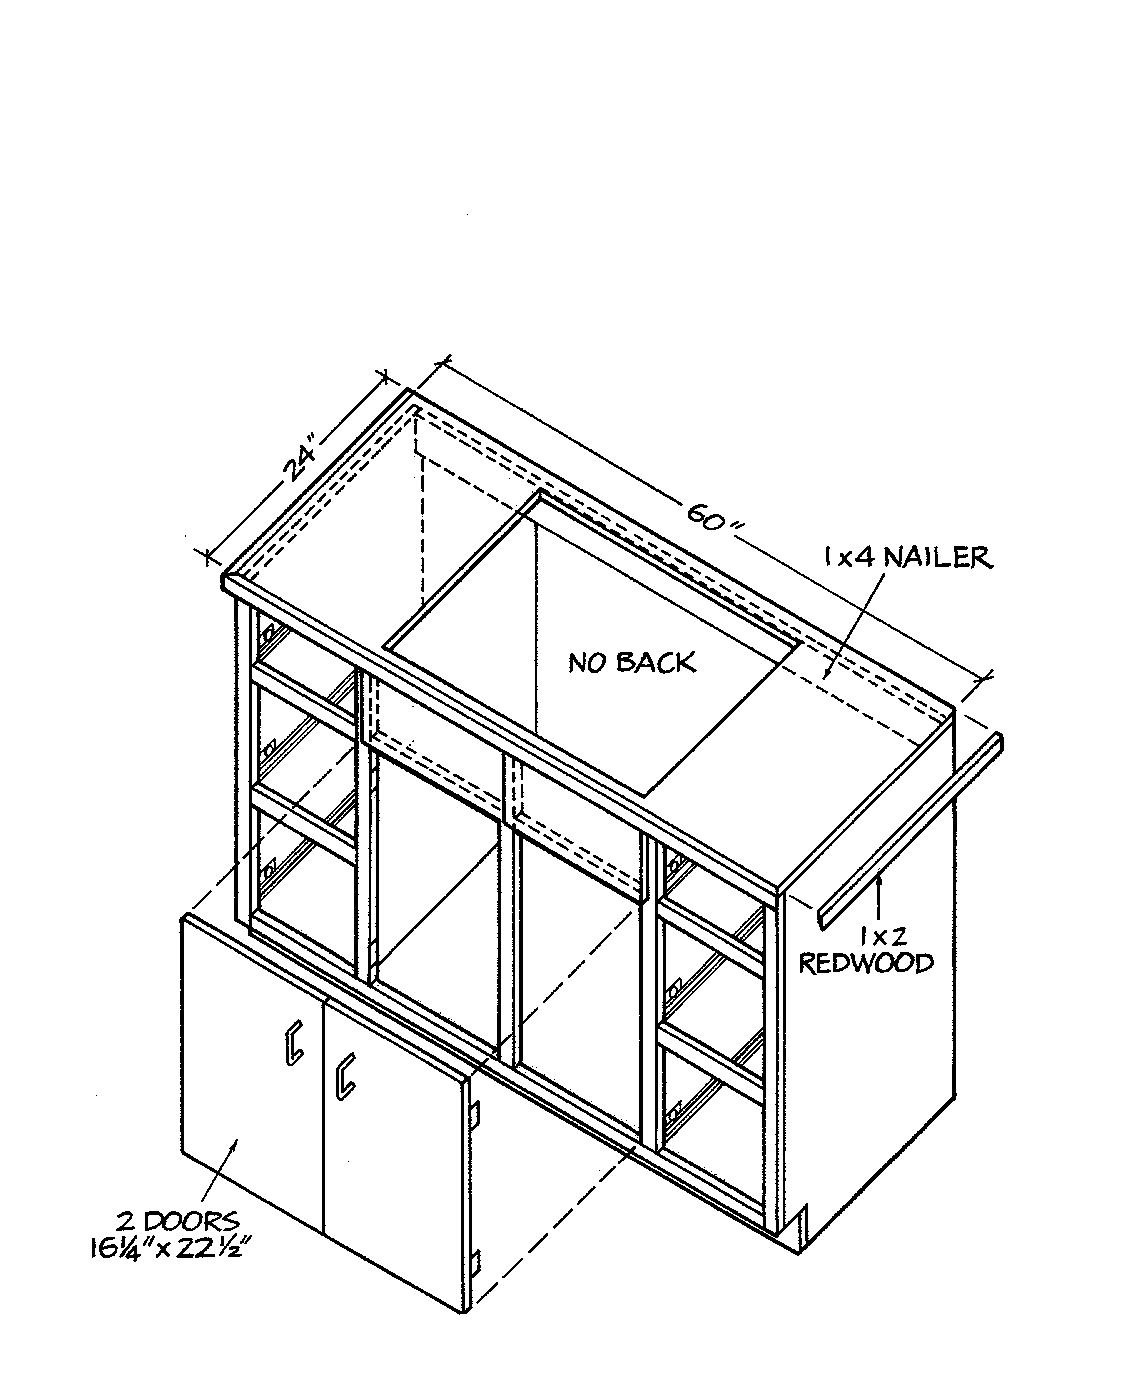 Kitchen Cabinet Drawings: Kitchen Autocad Drawing At GetDrawings.com